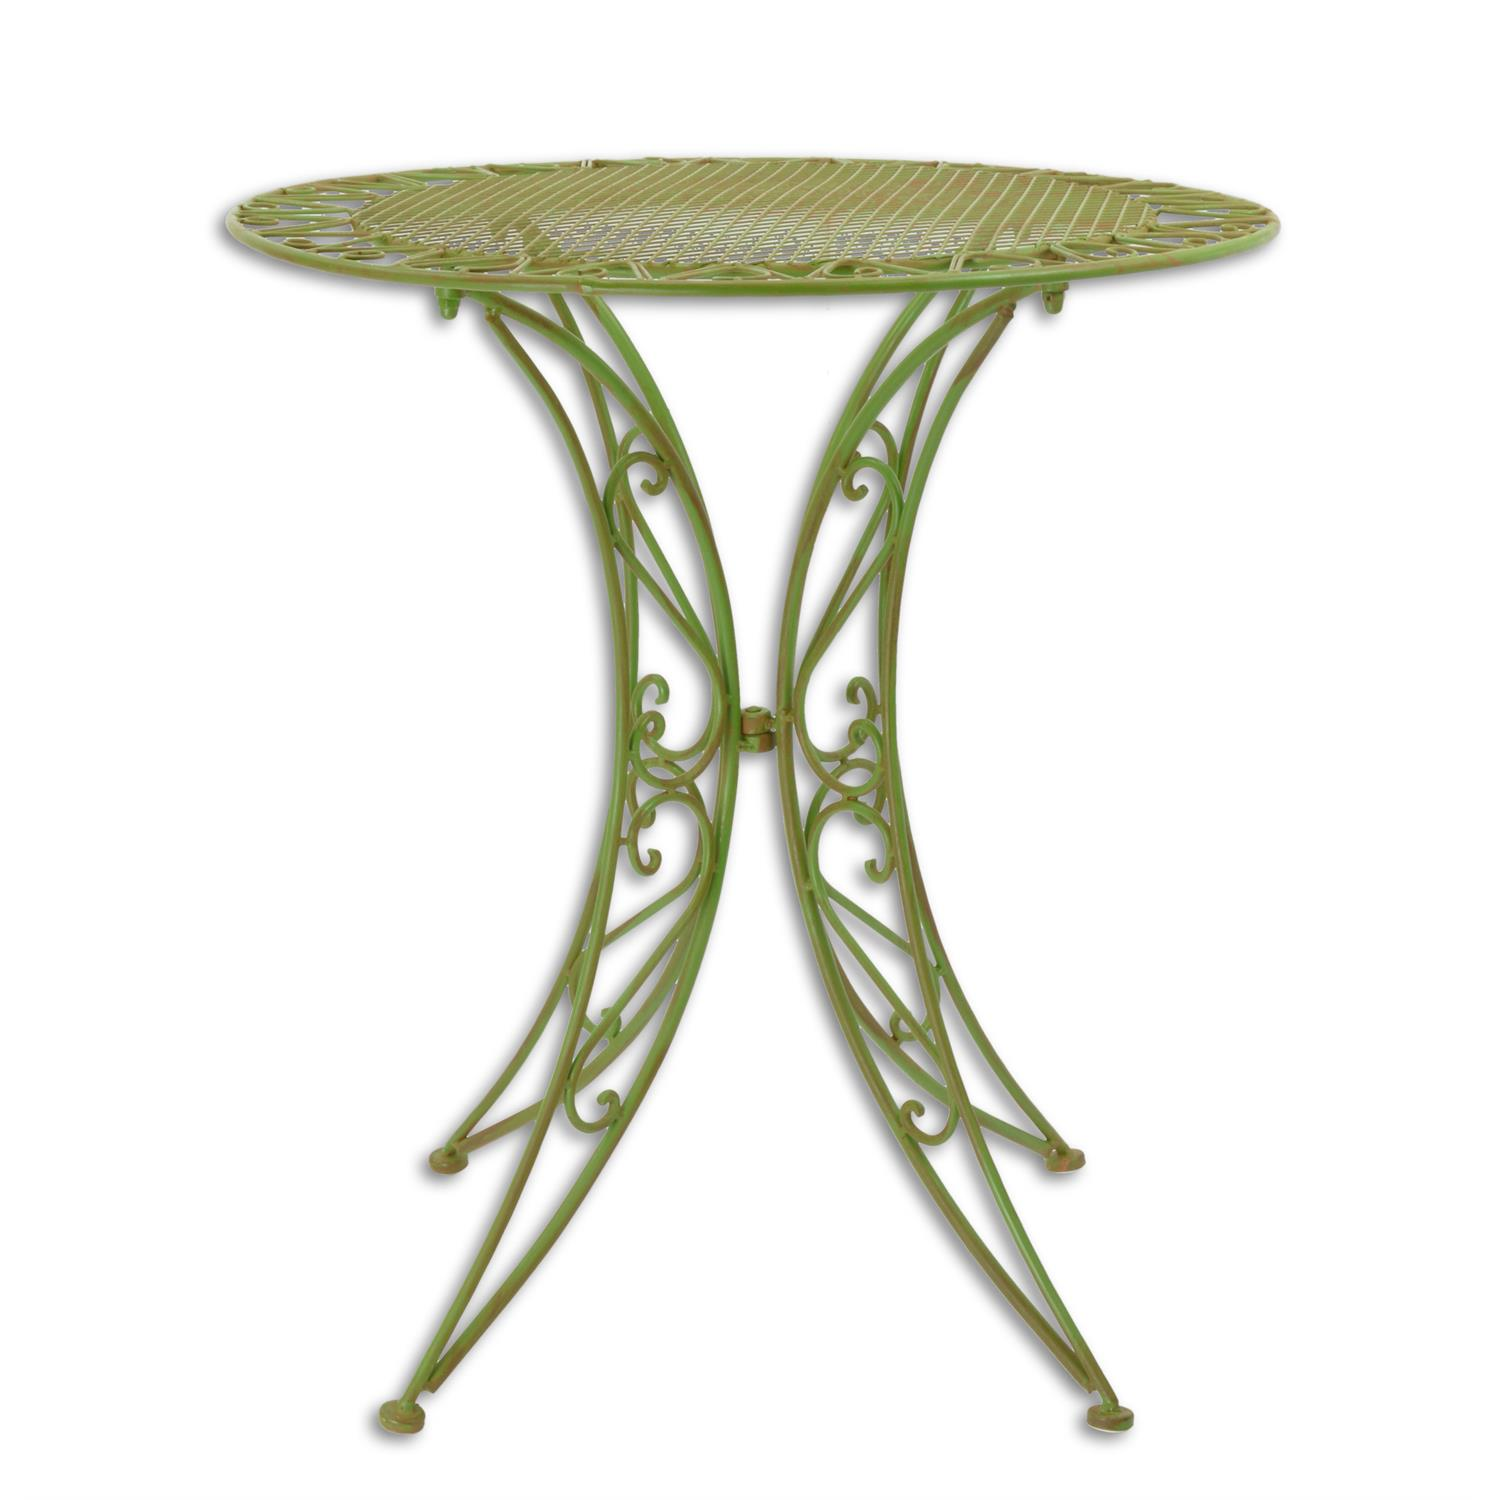 A GREEN IRON GARDEN TABLE